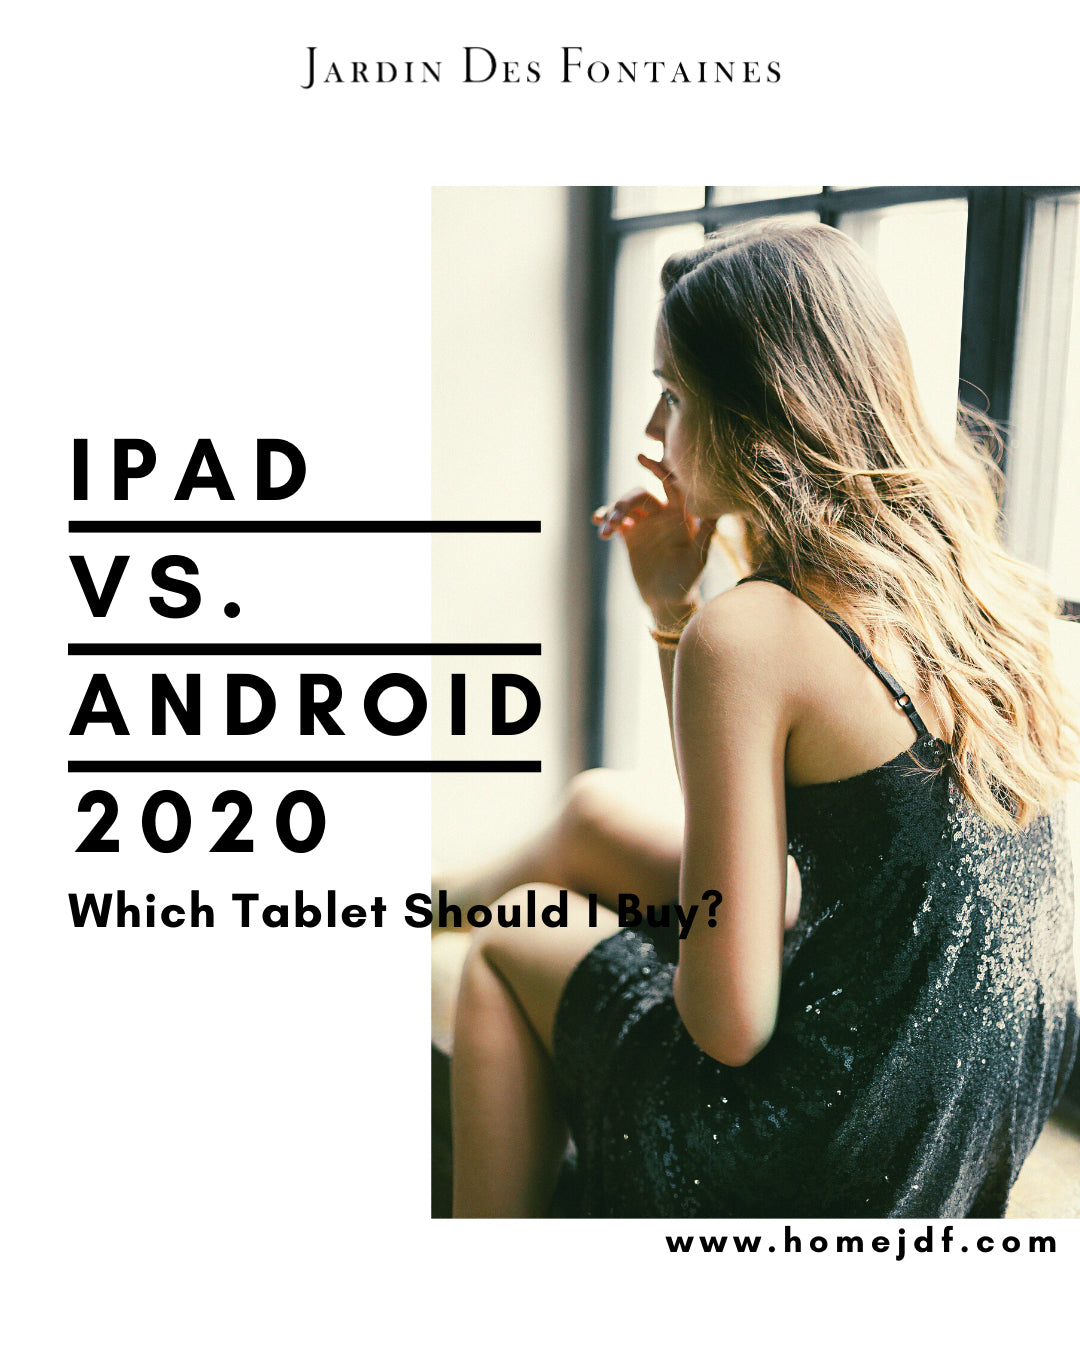 BLACEK FRIDAY SALE ! iPad Vs. Android 2020: Which Tablet Should I Buy?